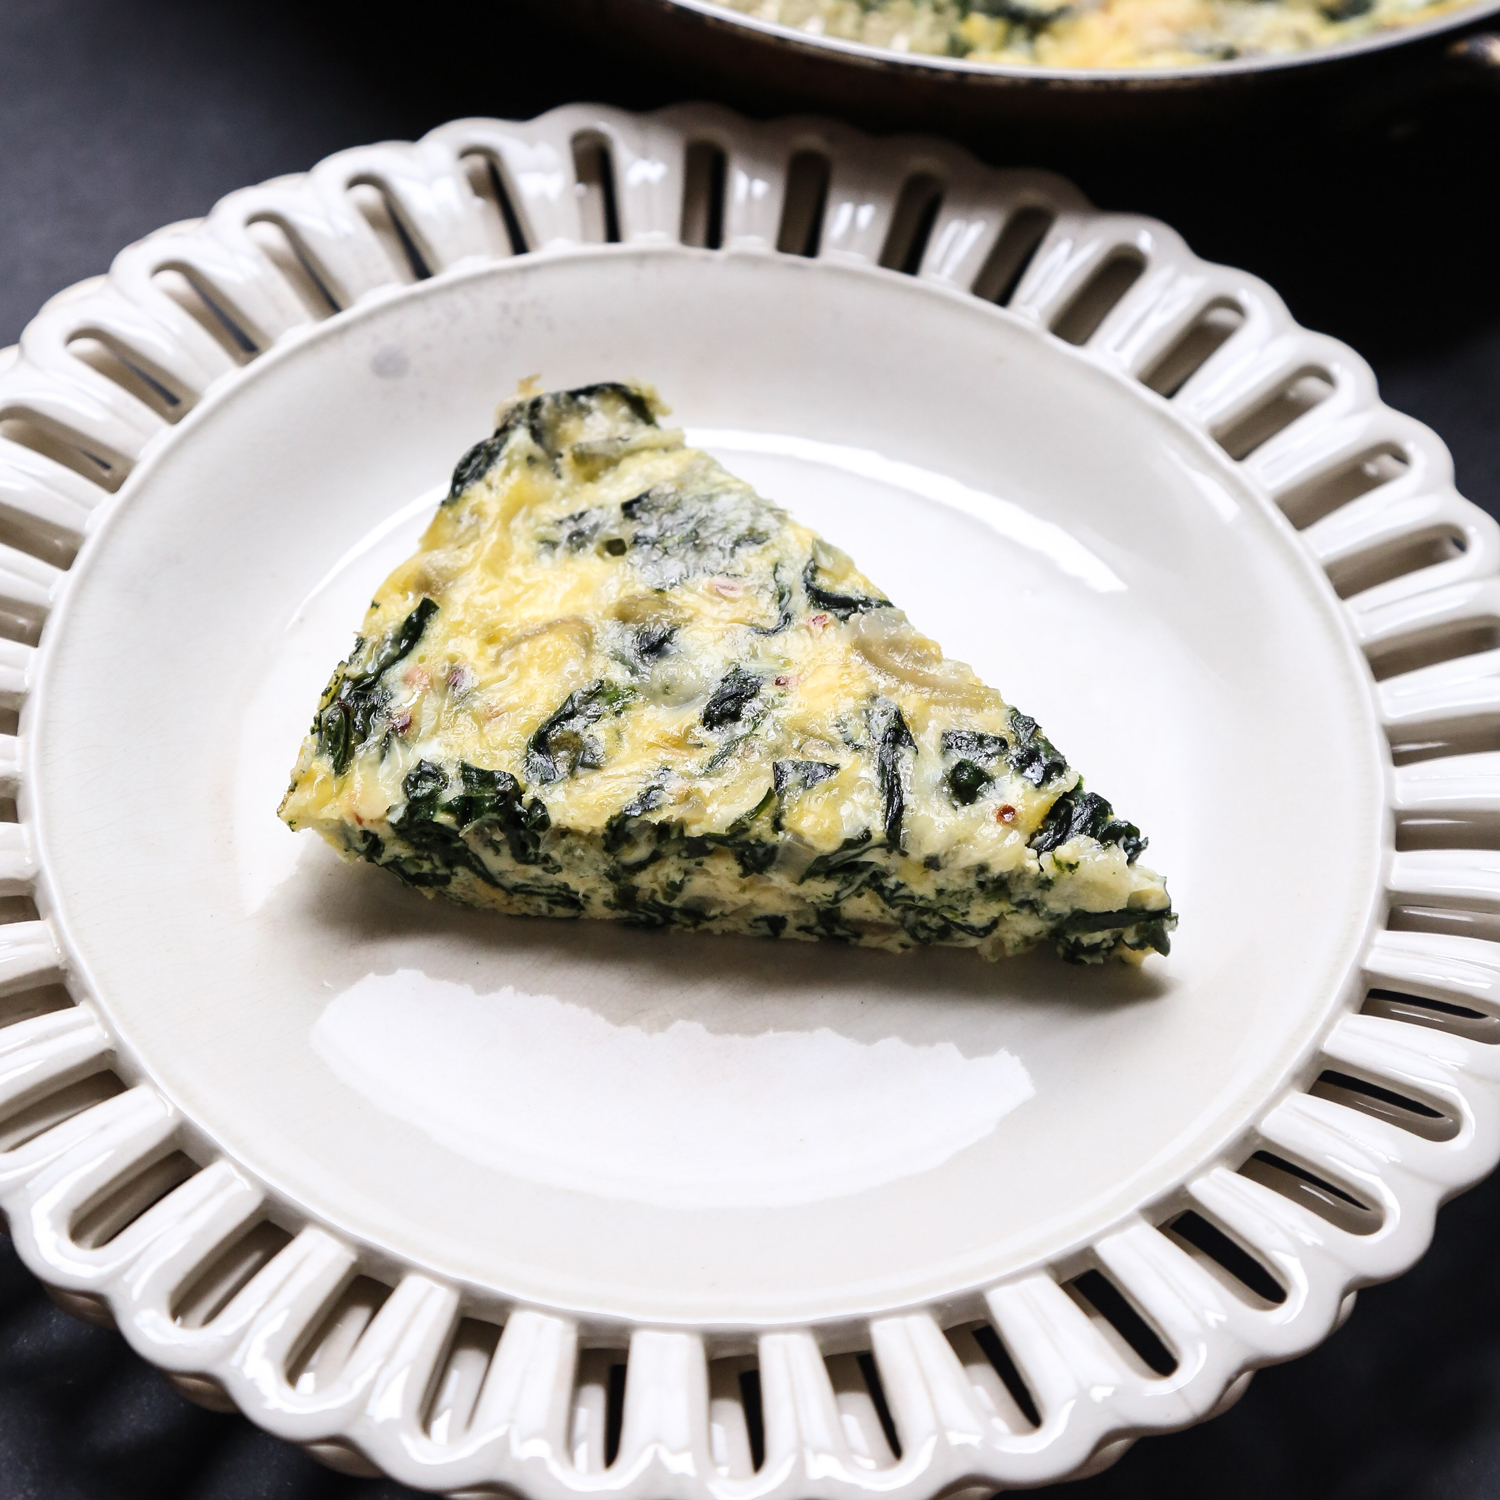 Crustless Quiche with Spinach and Shallots